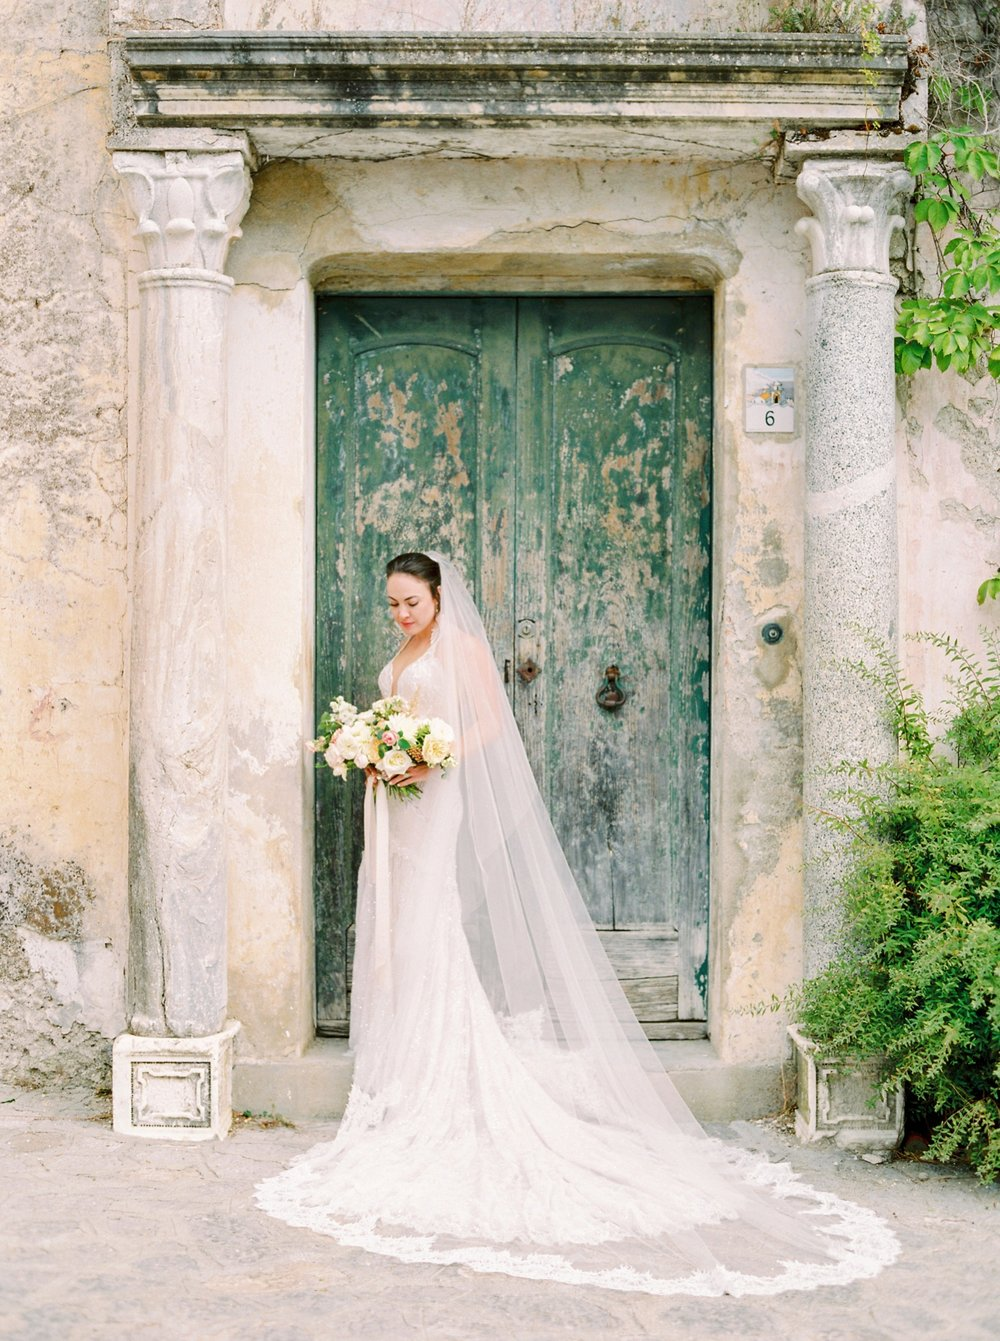 Ravello Italy Amafli Coast destination wedding photographers | english speaking wedding photographer in Italy | Justine Milton Photography | bridal portraits